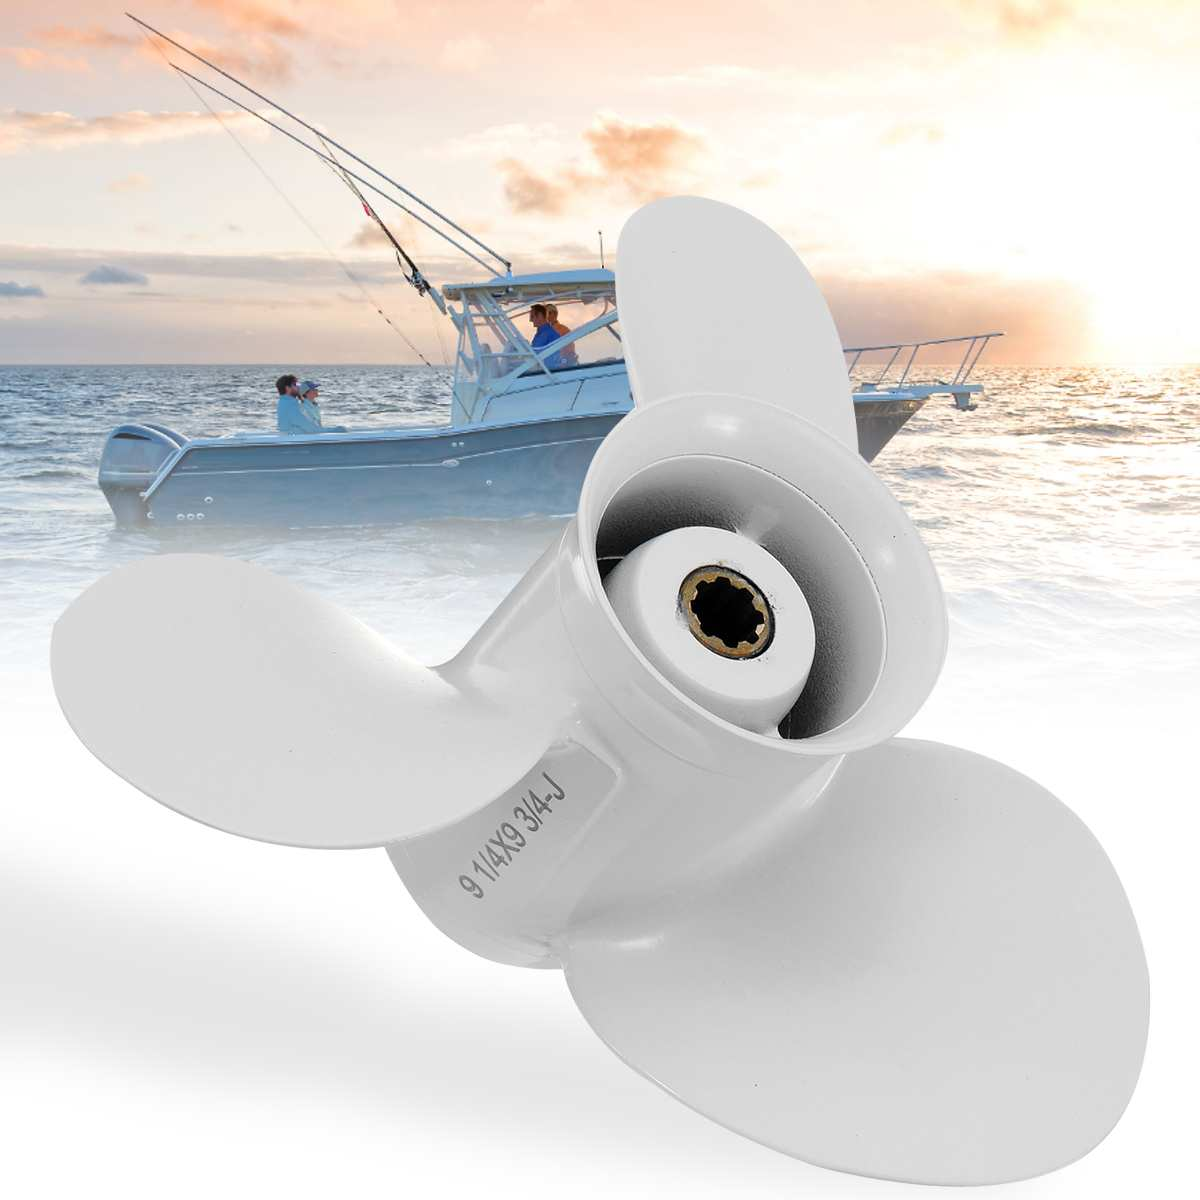 Atv,rv,boat & Other Vehicle Marine Propeller 683-45952-00-el 9 1/4 X 9 3/4 Boat Outboard Propeller For Yamaha 9.9-15hp Aluminum Alloy 3 Blades 8 Spline Tooths White To Adopt Advanced Technology